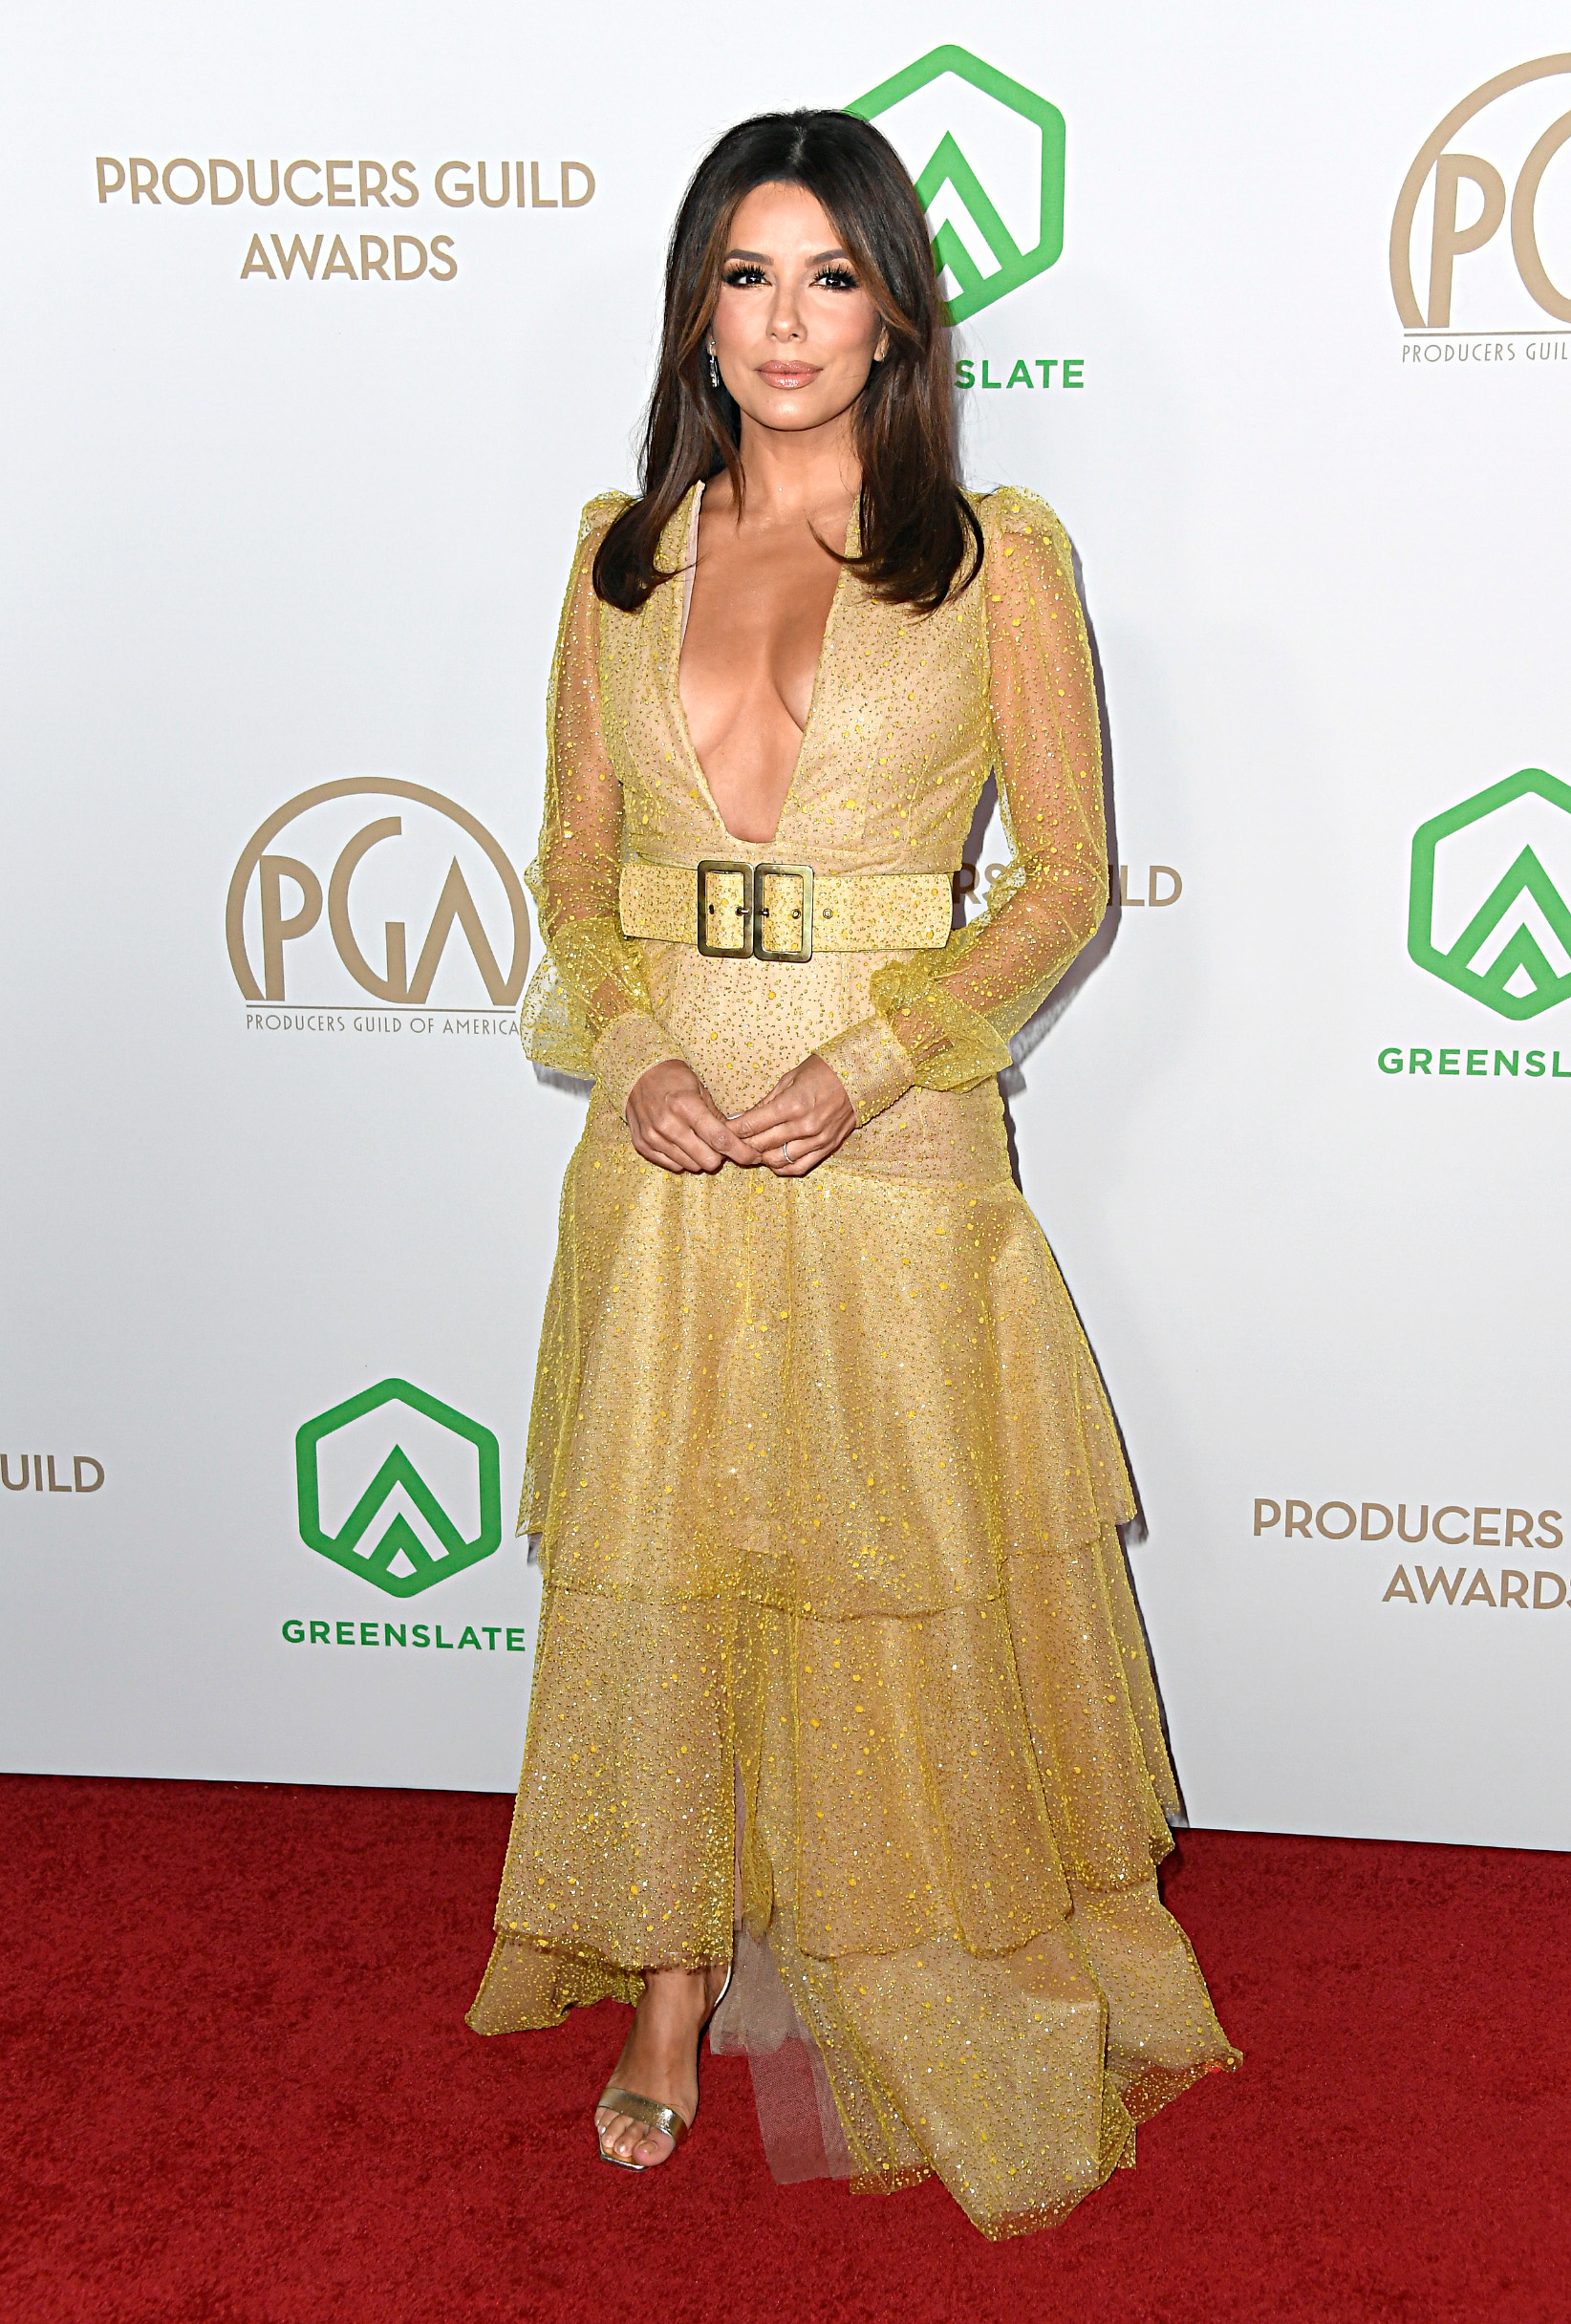 LOS ANGELES, CALIFORNIA - JANUARY 18: Eva Longoria attends the 31st Annual Producers Guild Awards at Hollywood Palladium on January 18, 2020 in Los Angeles, California. (Photo by Frazer Harrison/Getty Images)